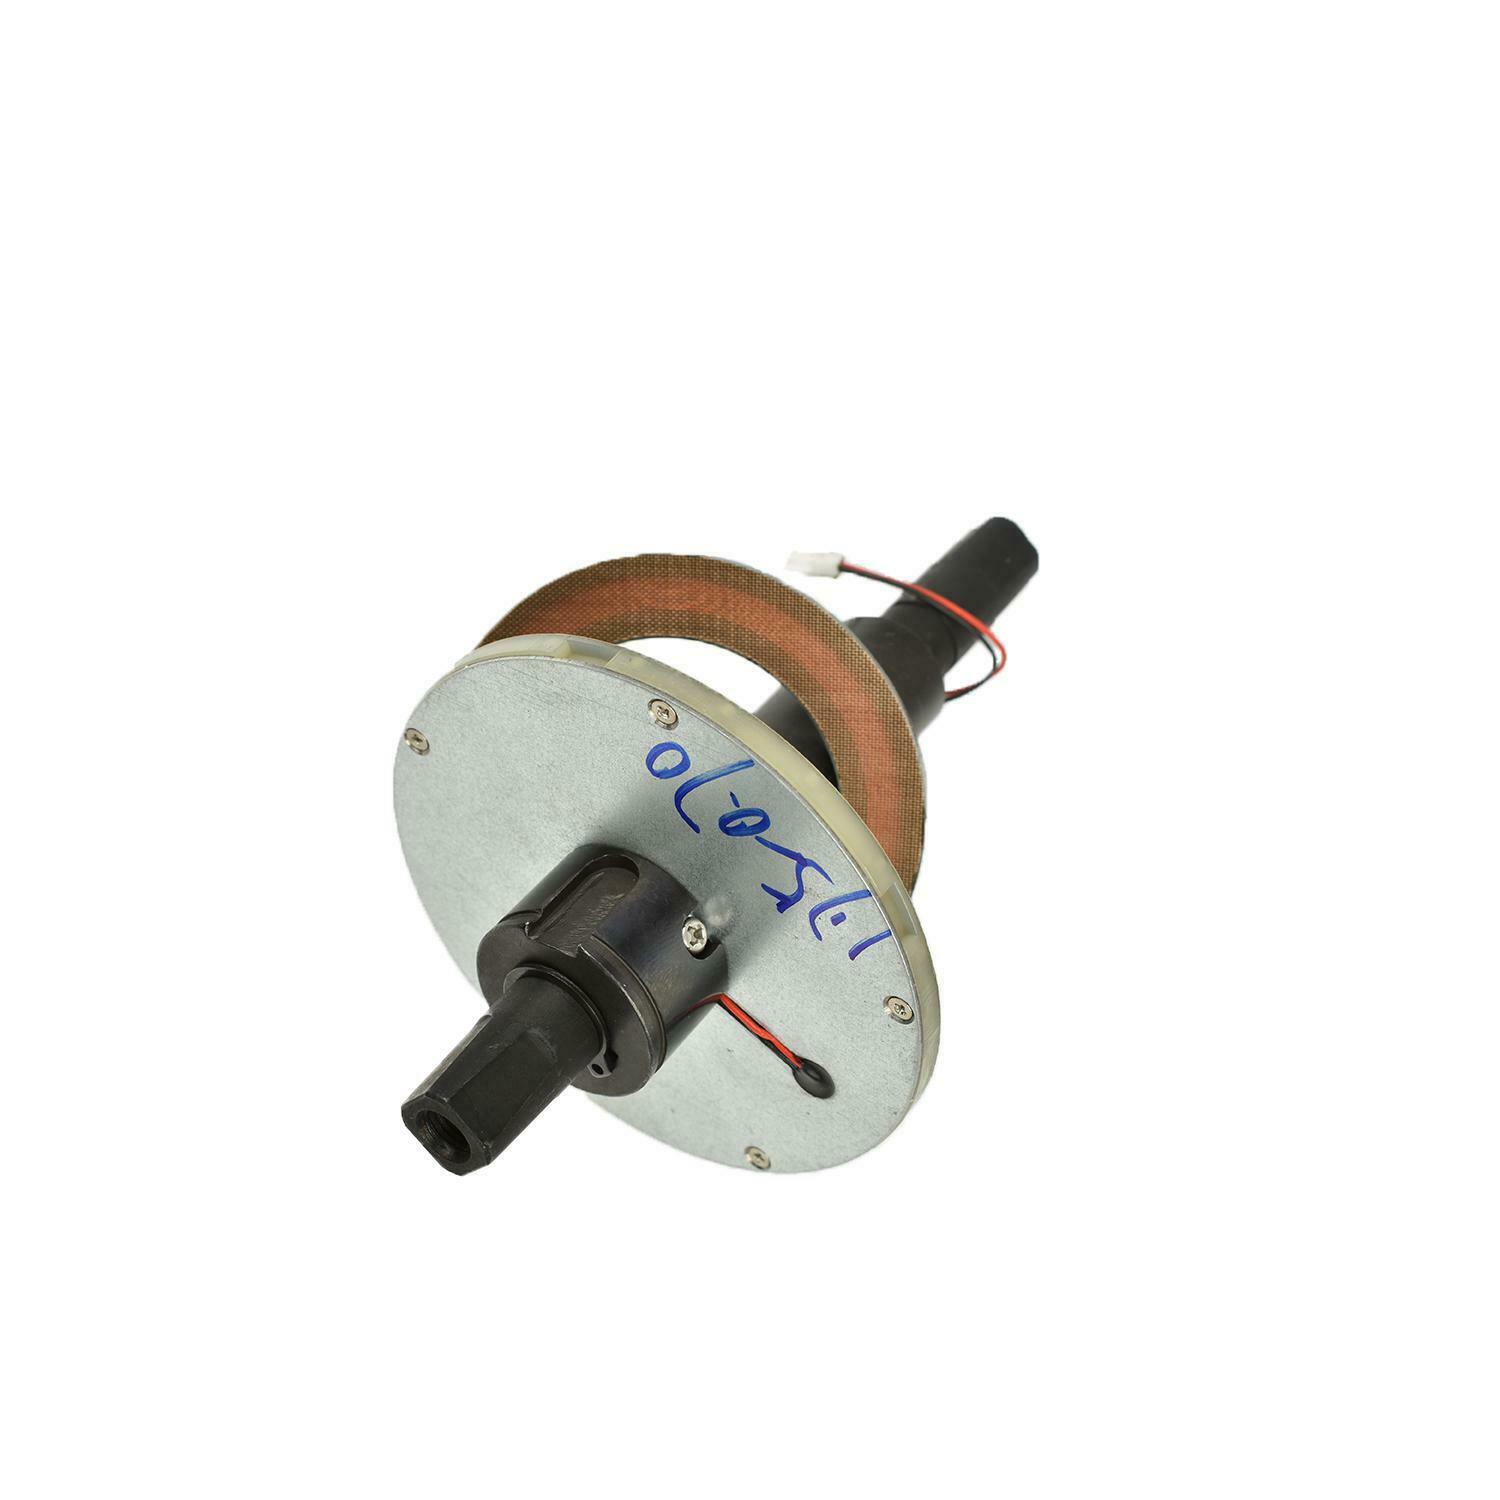 Torque sensor for TSDZ2 electric bicycle central mid motor